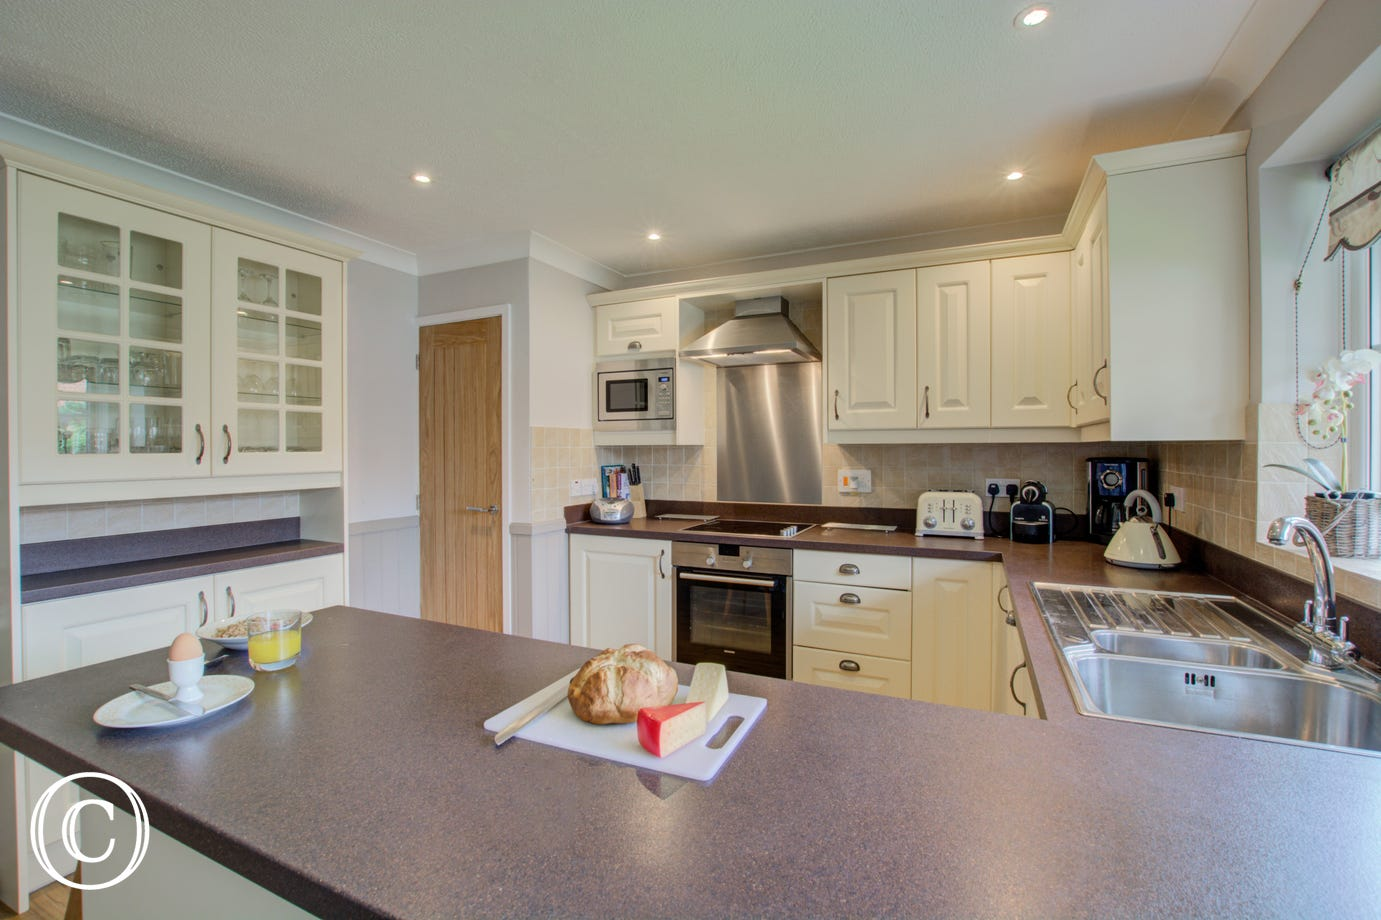 Kitchen with breakfast bar and electric hob and oven.